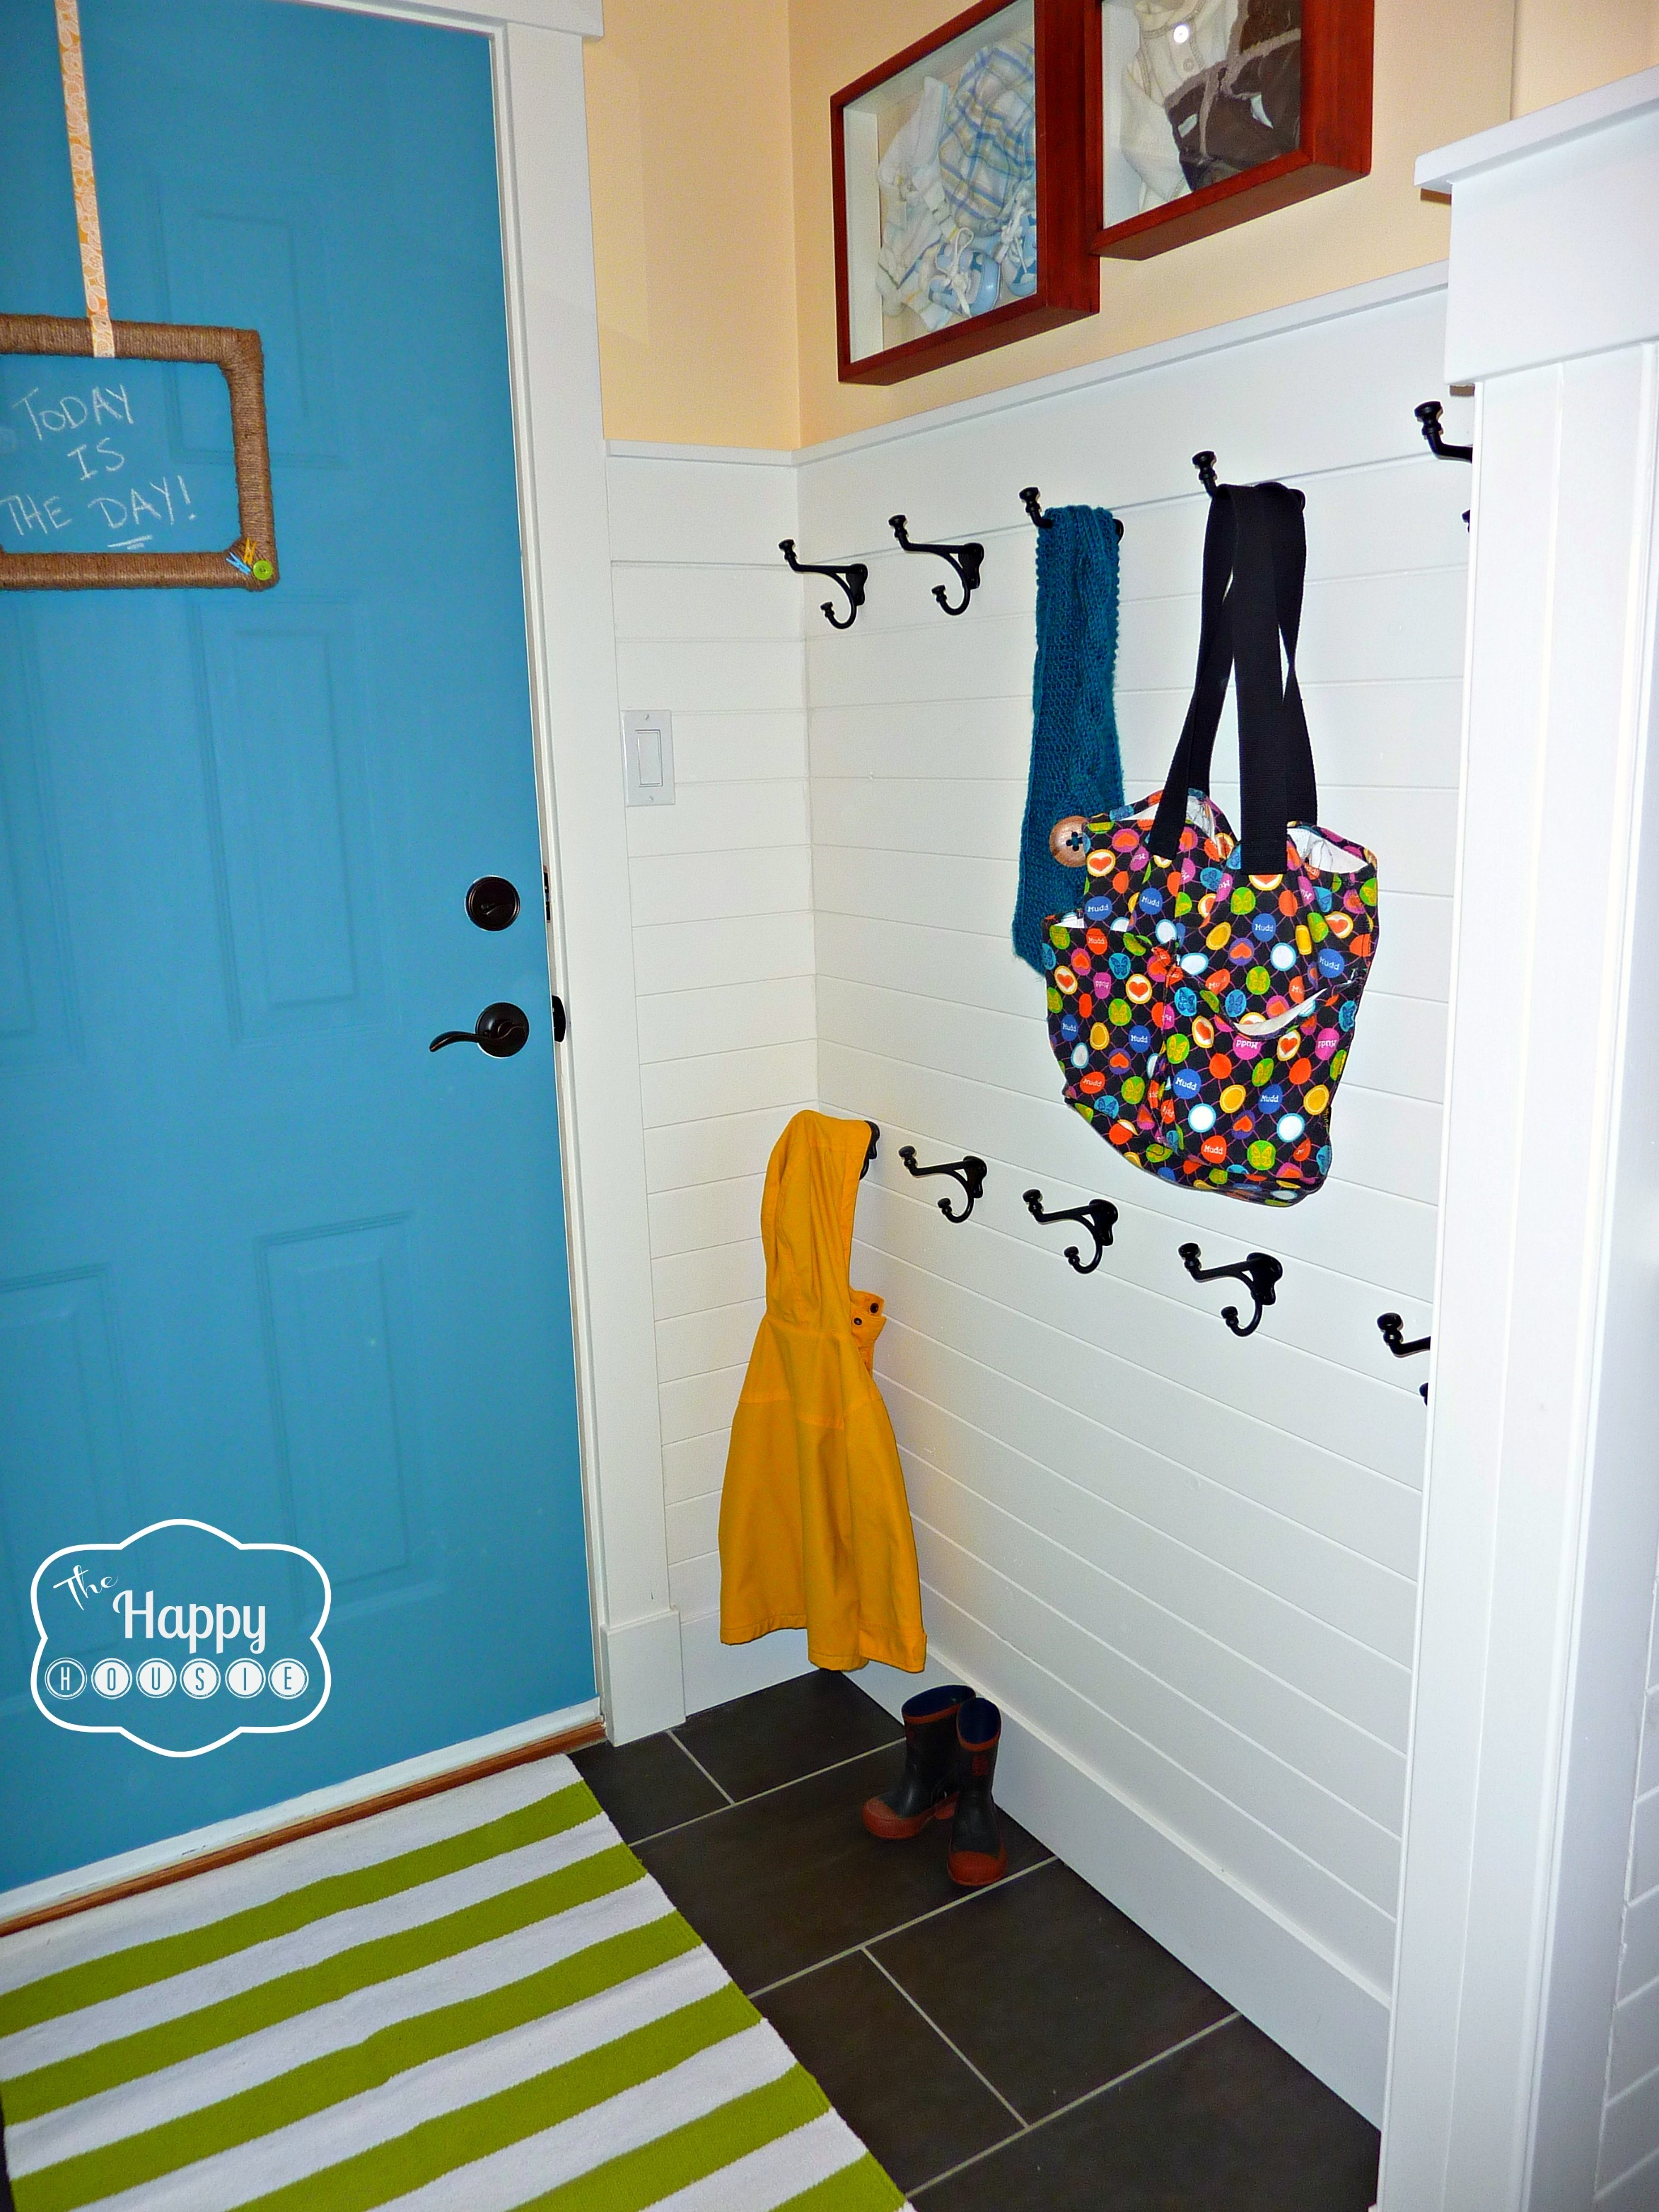 Diy Hang It Up!: A Hook Hanging How To | The Happy Housie Inside Wall Art Coat Hooks (Image 10 of 20)